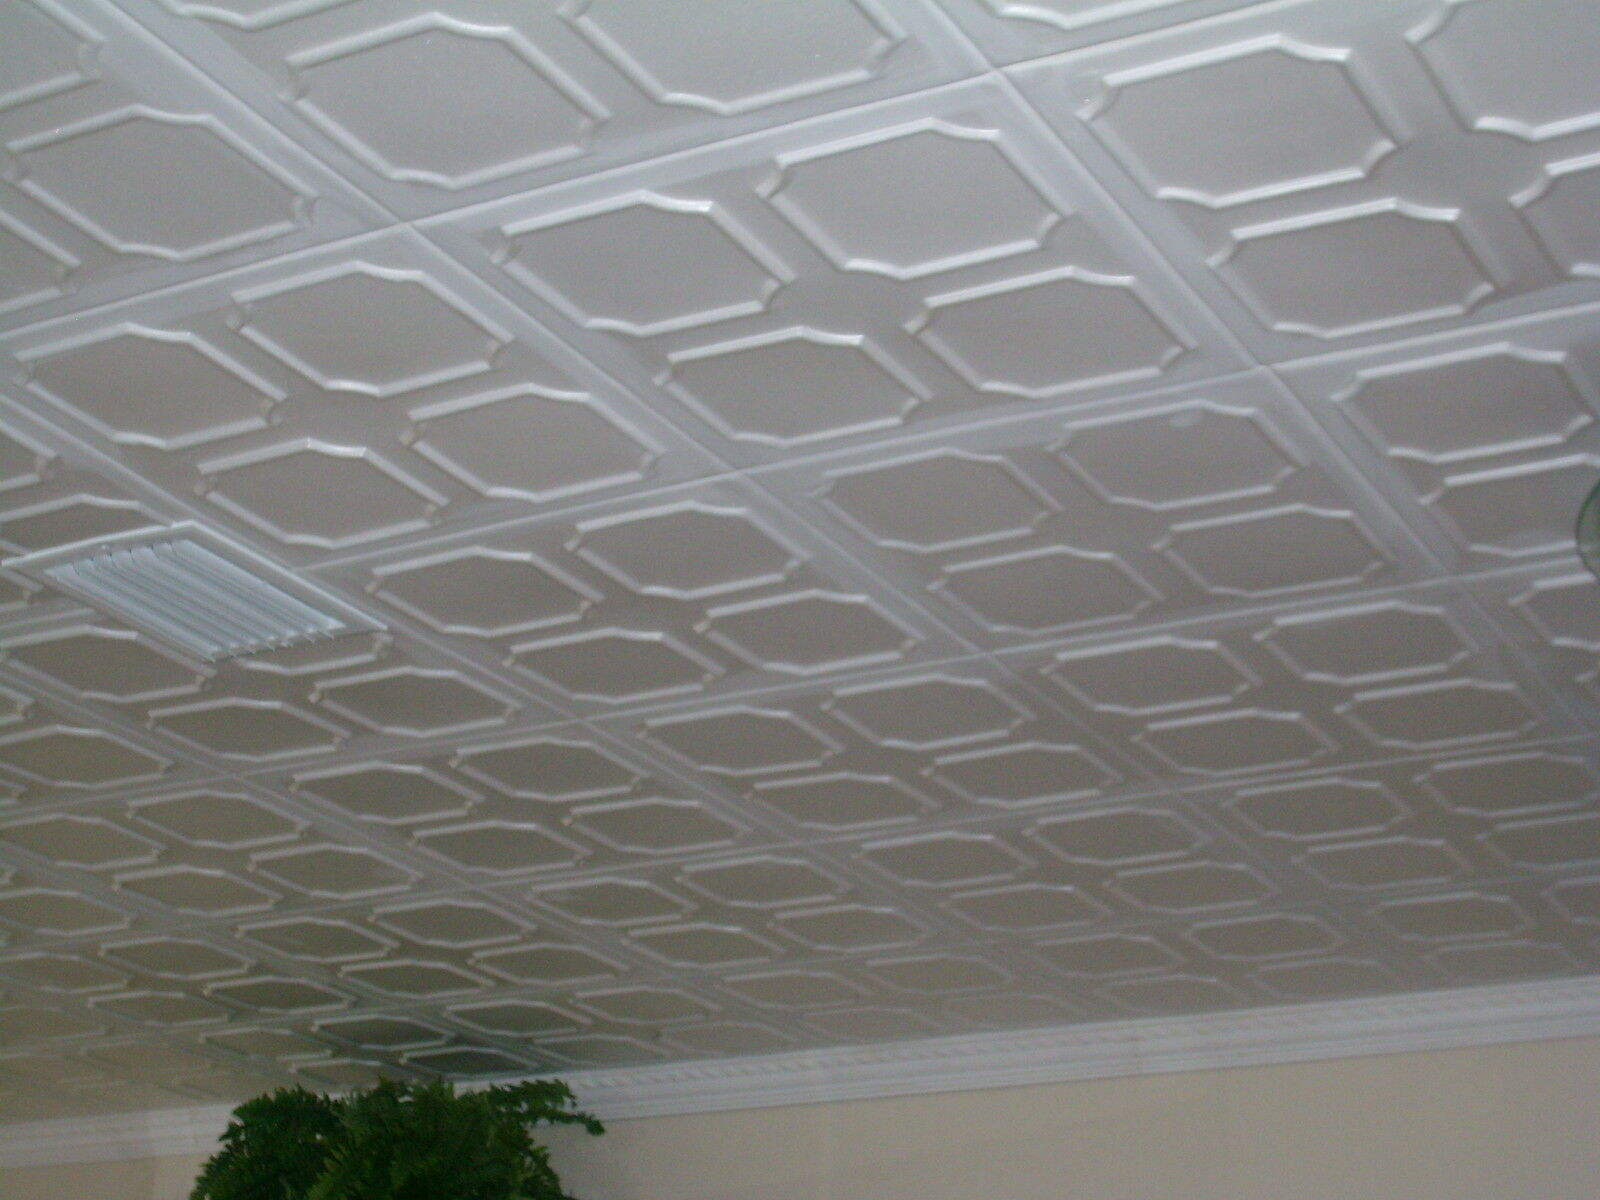 Tin look styrofoam ceiling tiles easy installation r1w white ebay picture 1 of 4 dailygadgetfo Gallery